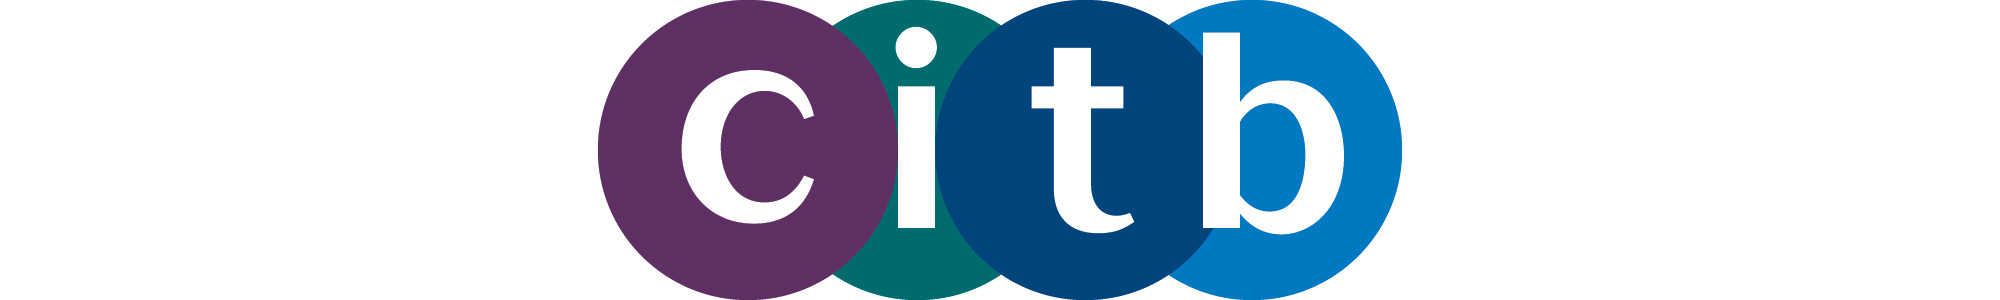 CITB: Construction Industry Training Board